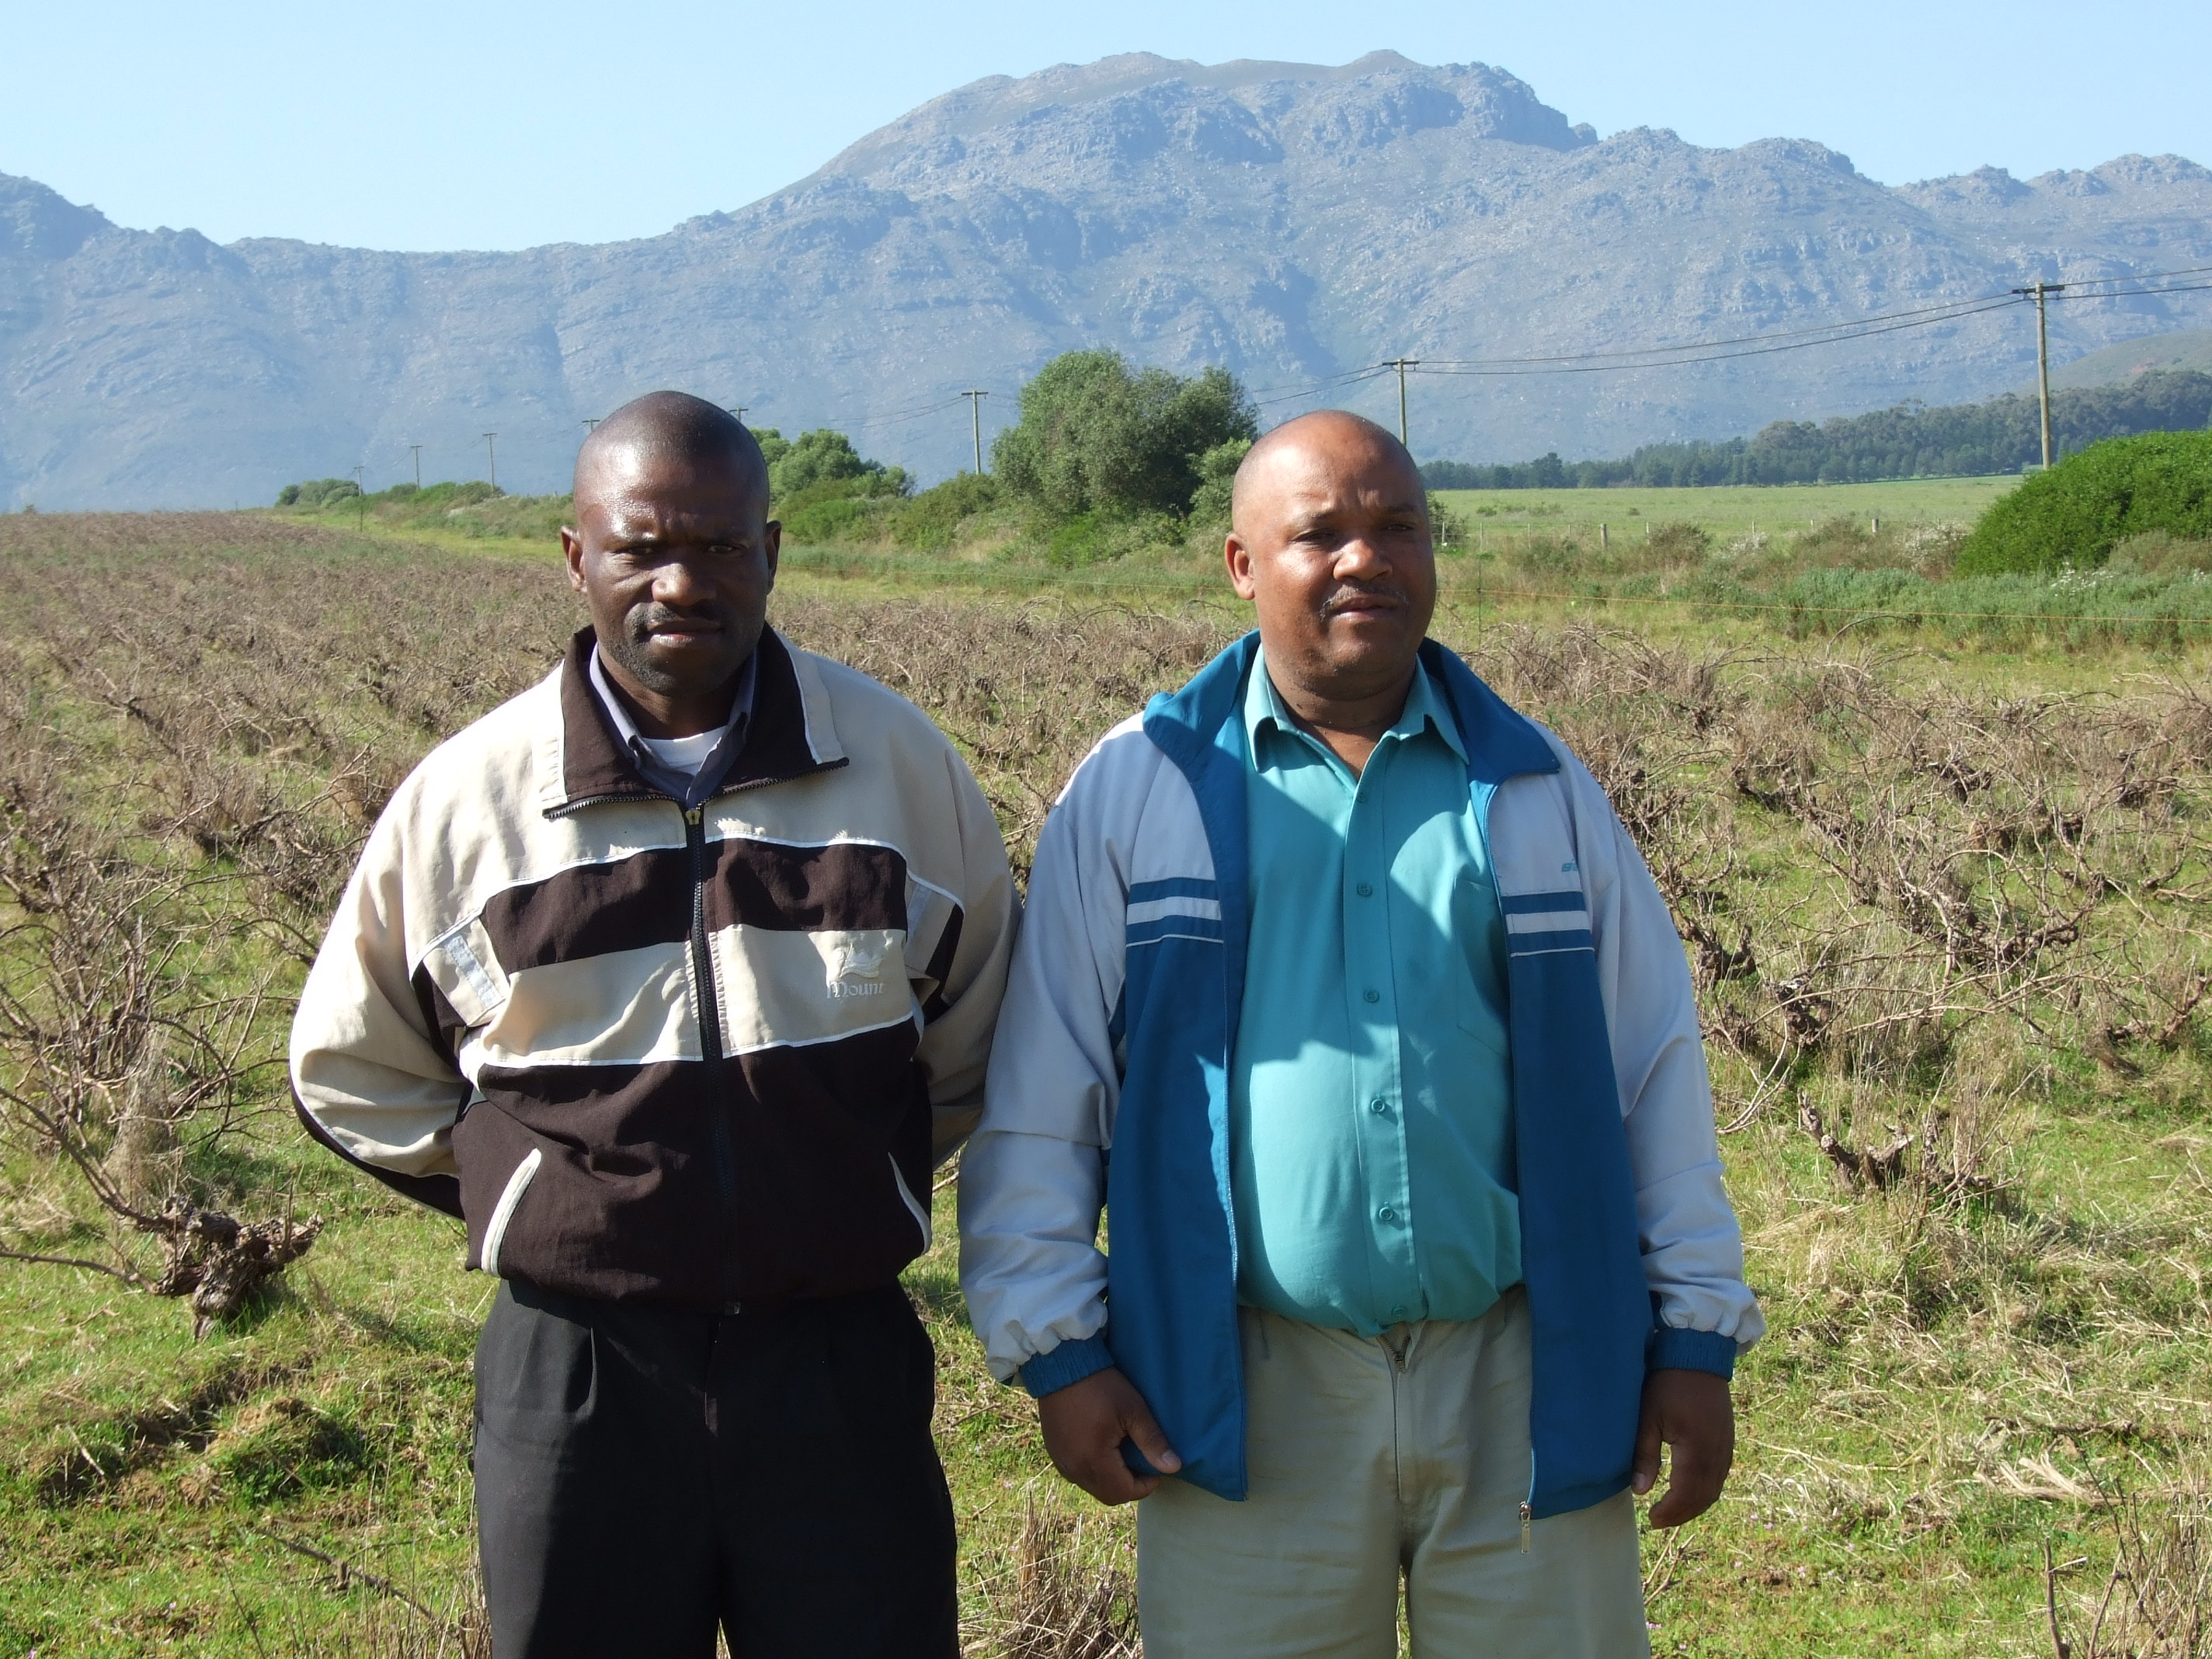 Kallie Geslin (left) and Charles Pietersen standing in front of vines belonging to their former Groenberg Wine farm near Paarl in the Western Cape. The men were part of a syndicate that bought the farm under the government's land reform programme, but it